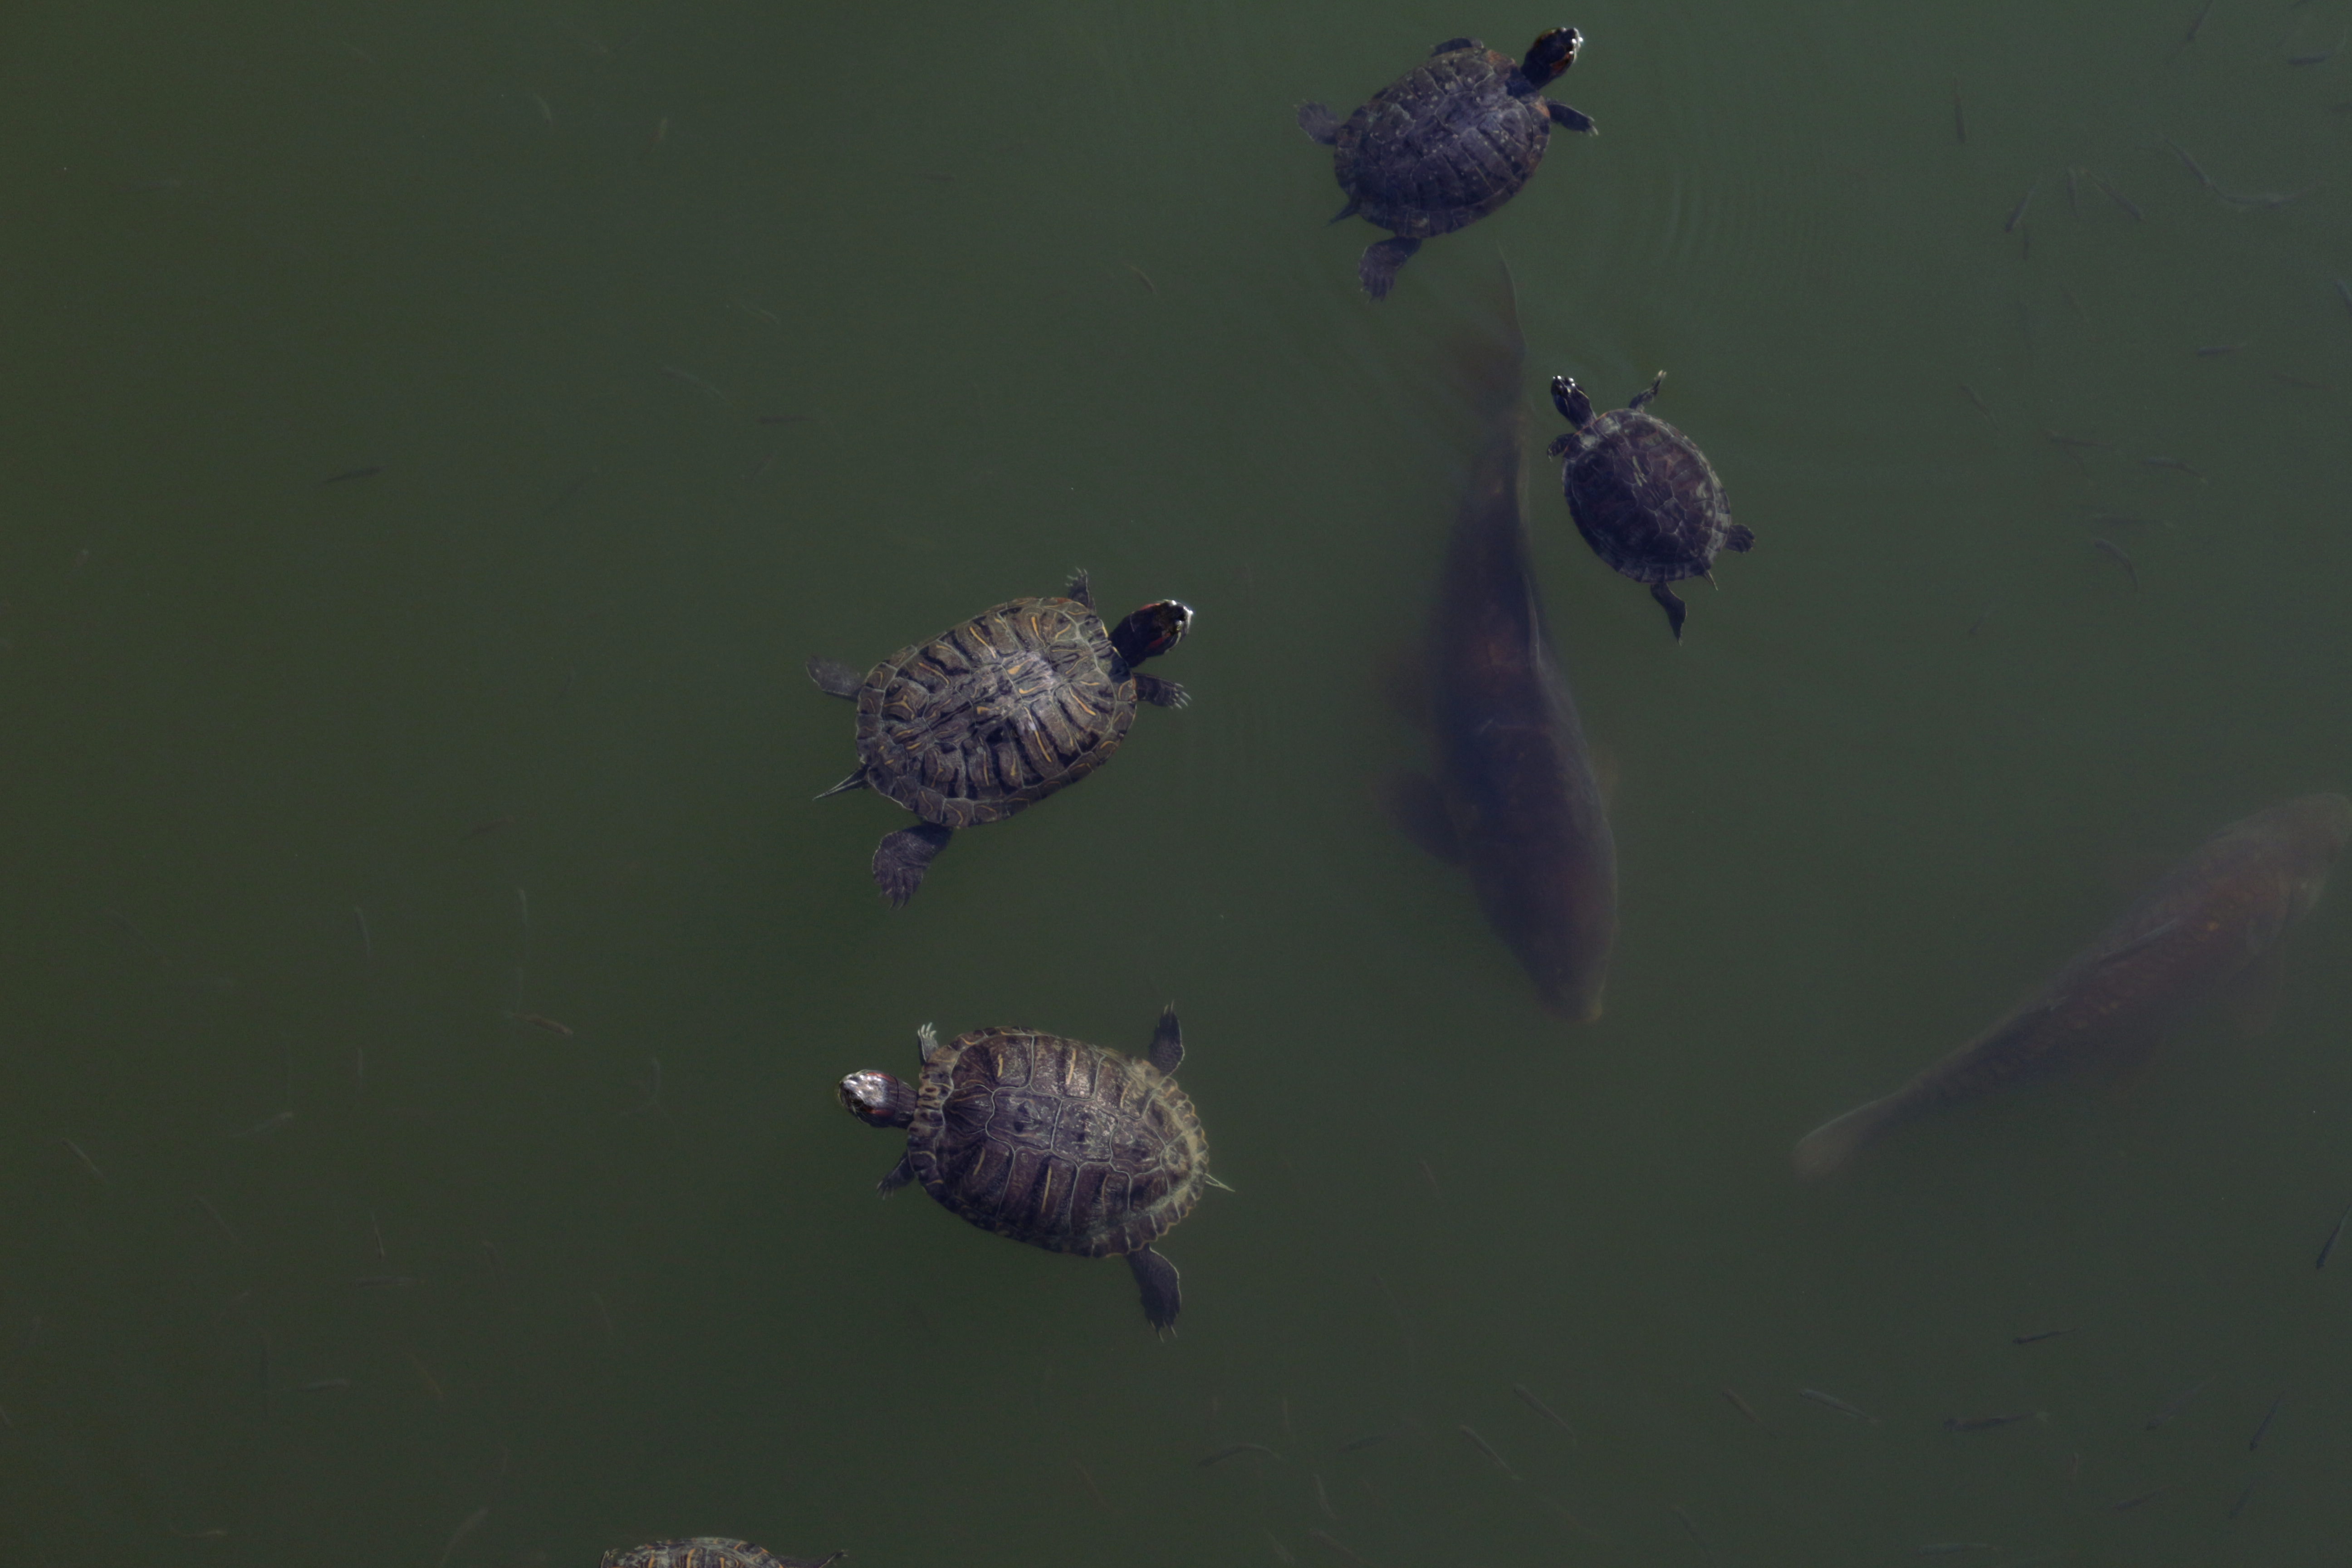 Big Slider Turtles with even bigger fish